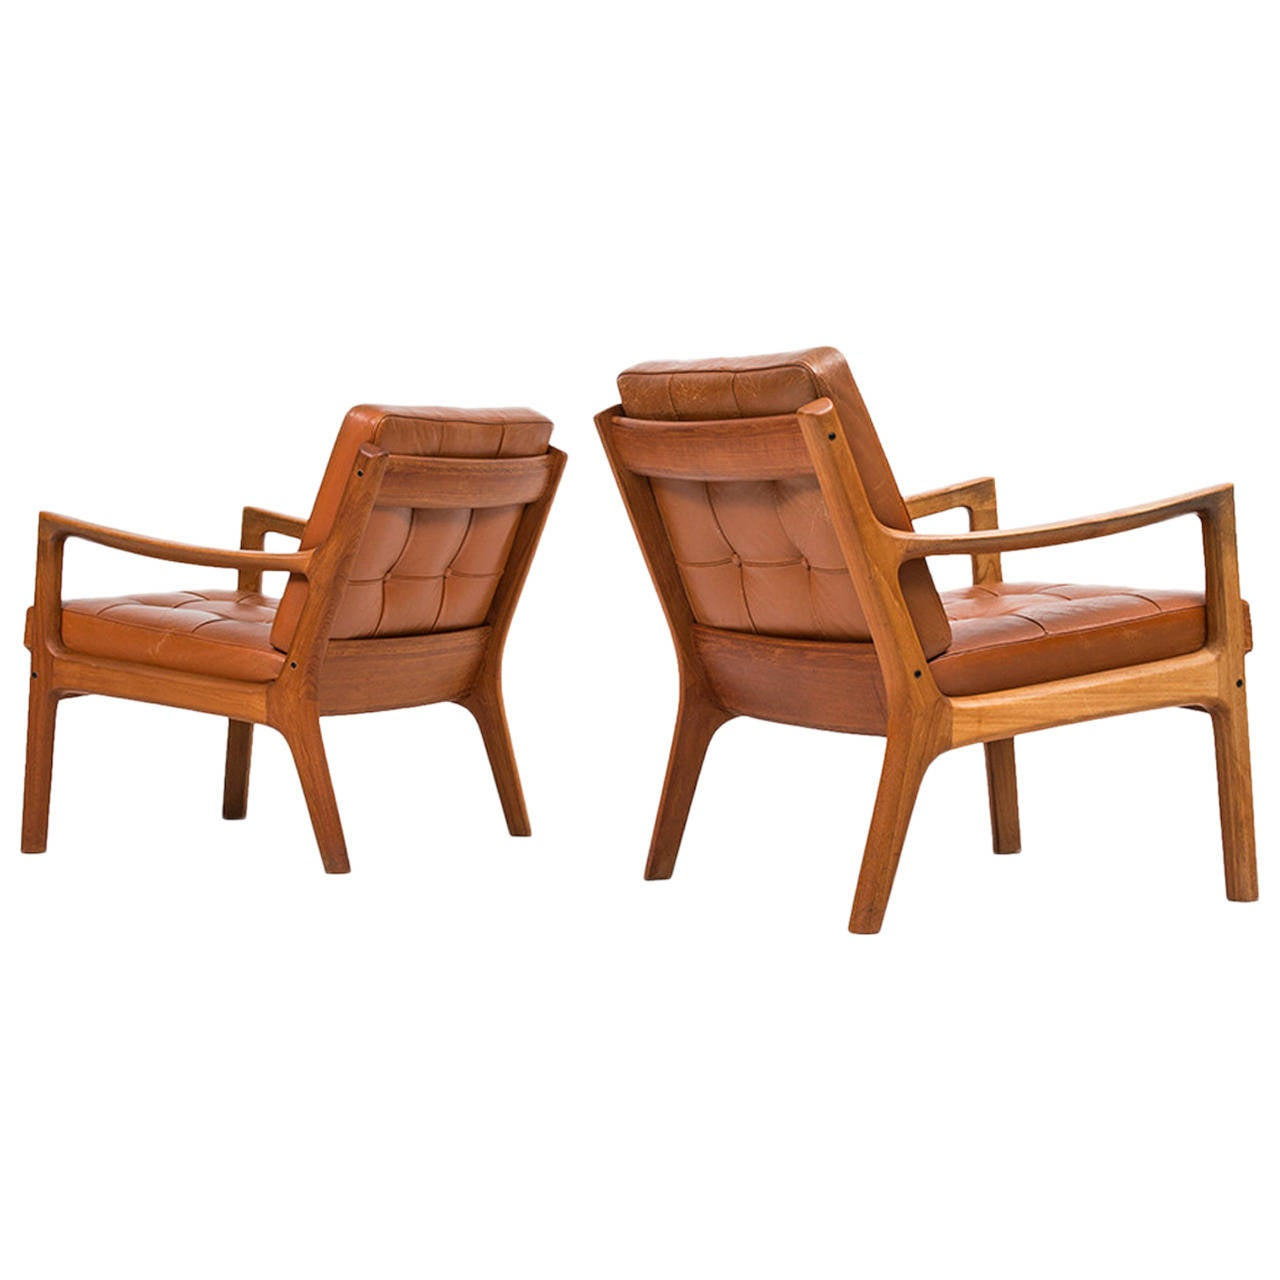 Ole Wanscher Senator easy chairs by France & Son in Denmark